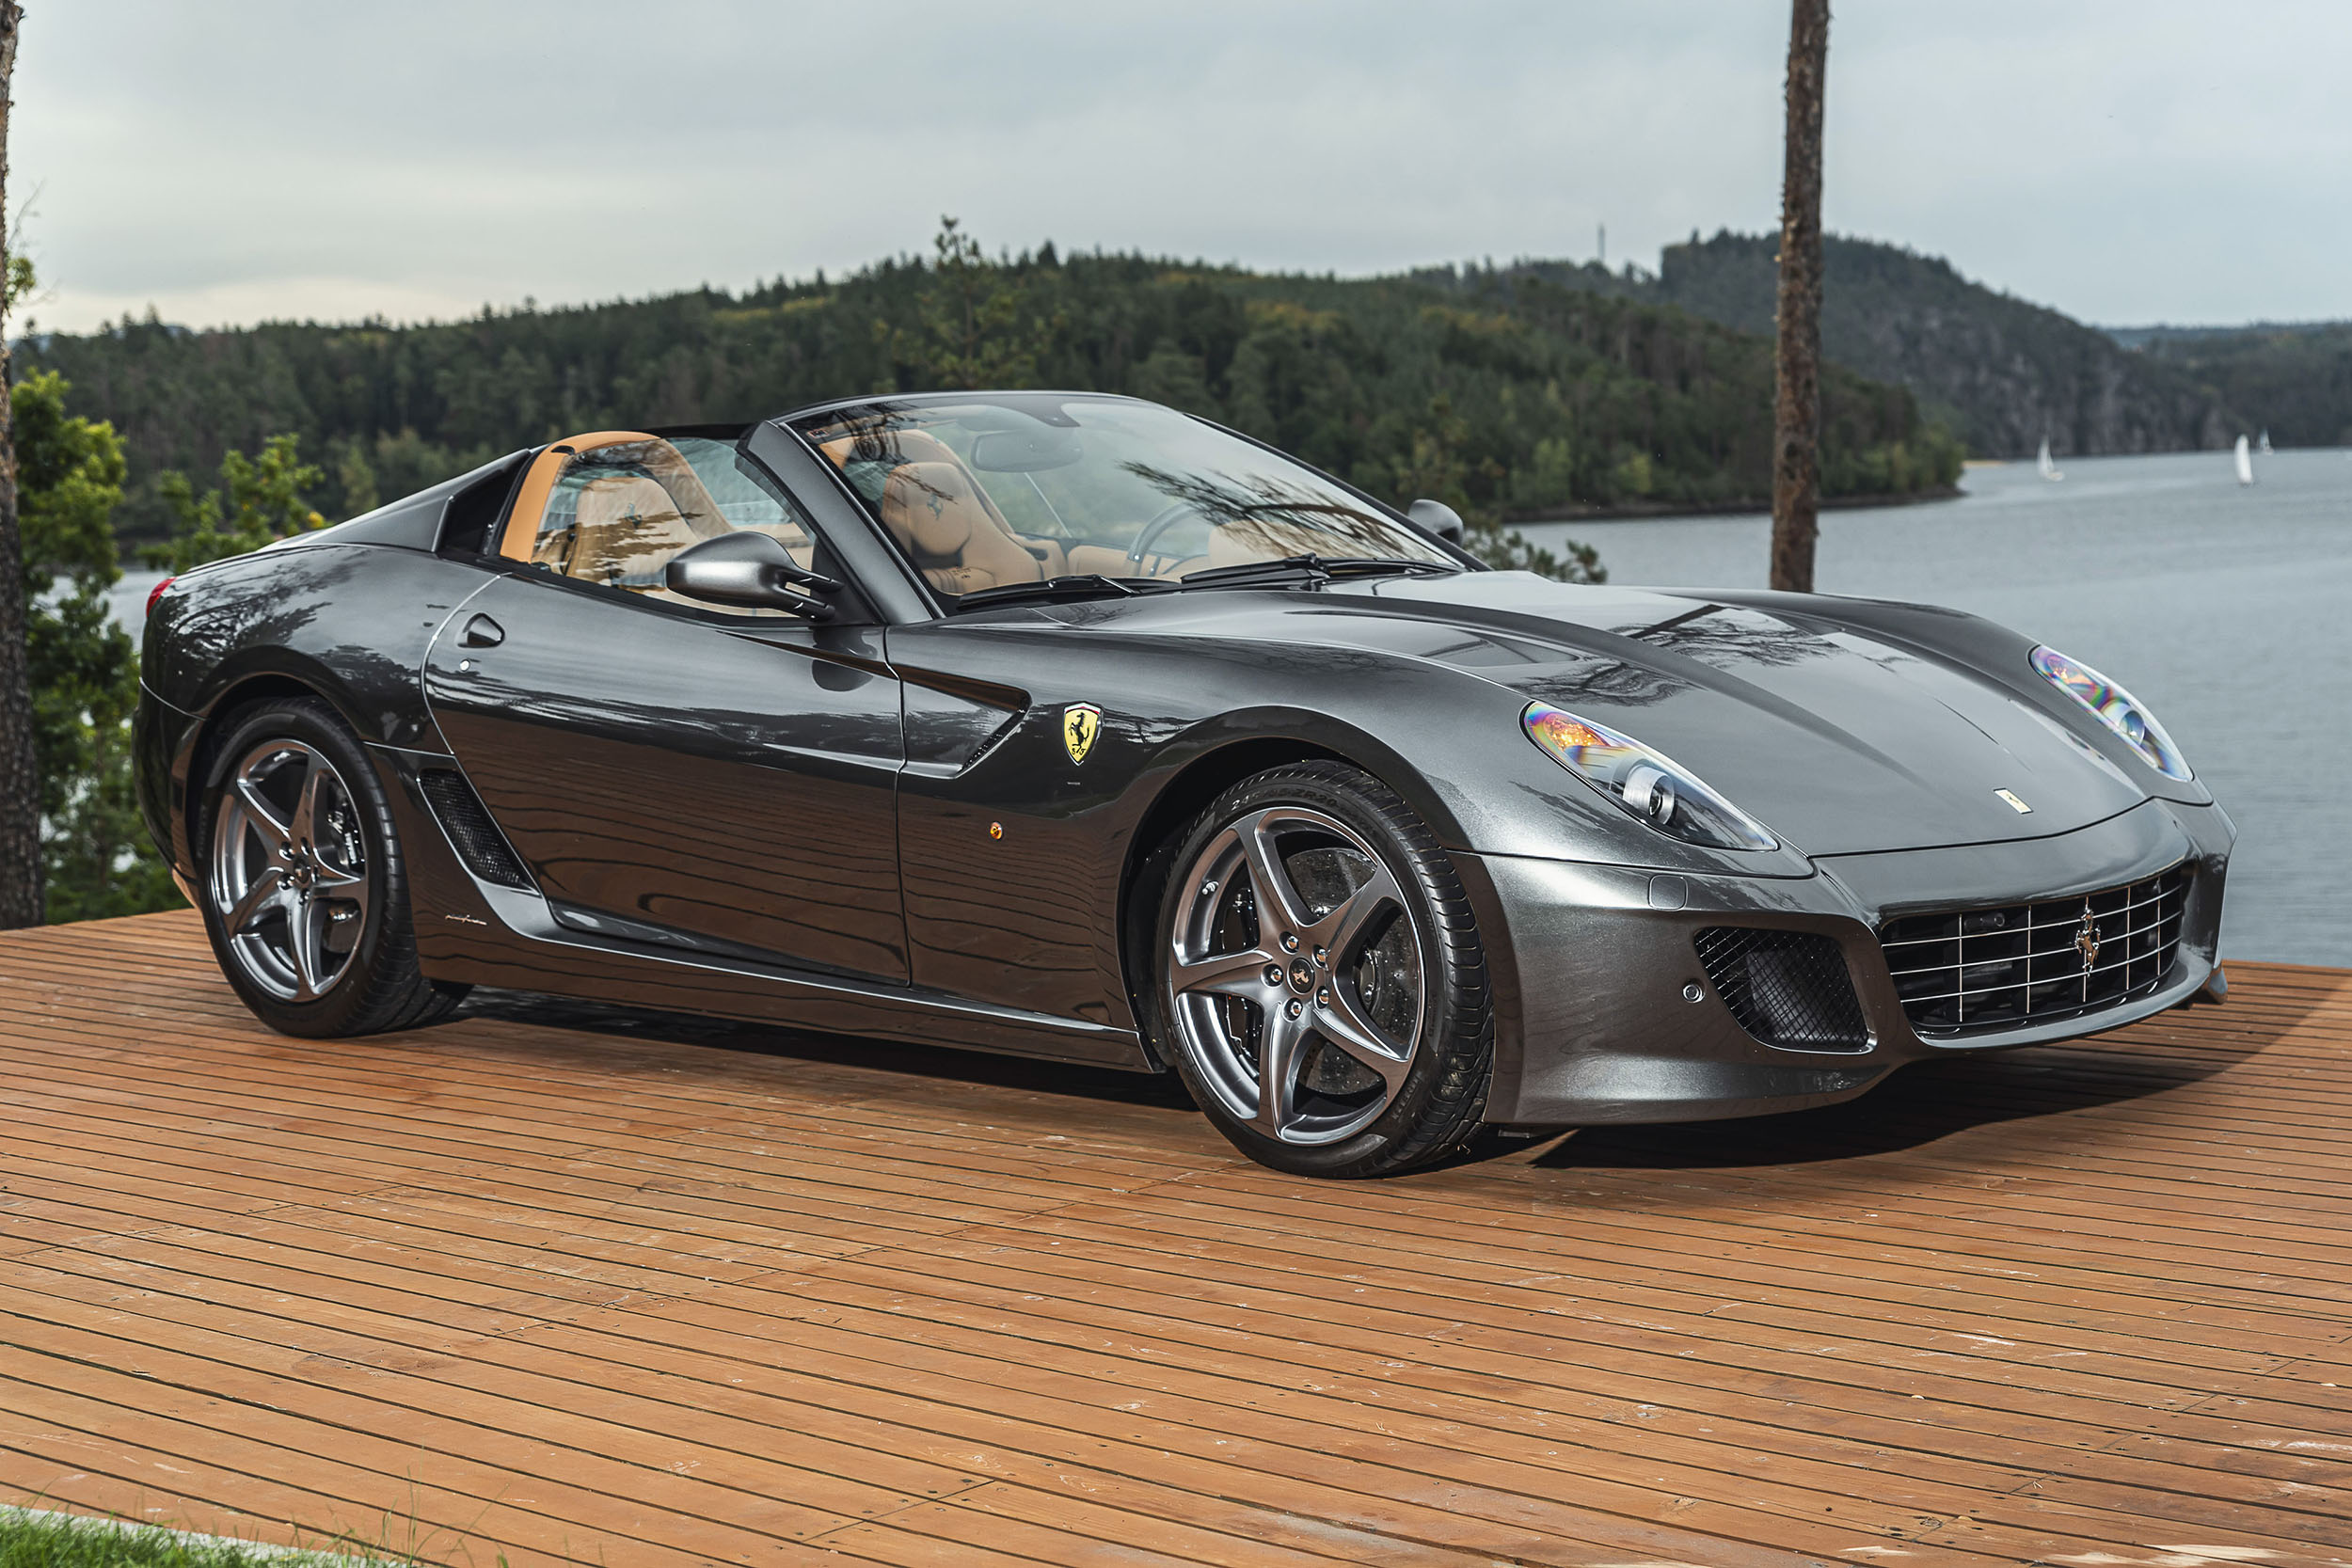 201021 2011 Ferrari 599 SA Aperta (Credit – Filip Vido ©2020 Courtesy of RM Sotheby's)